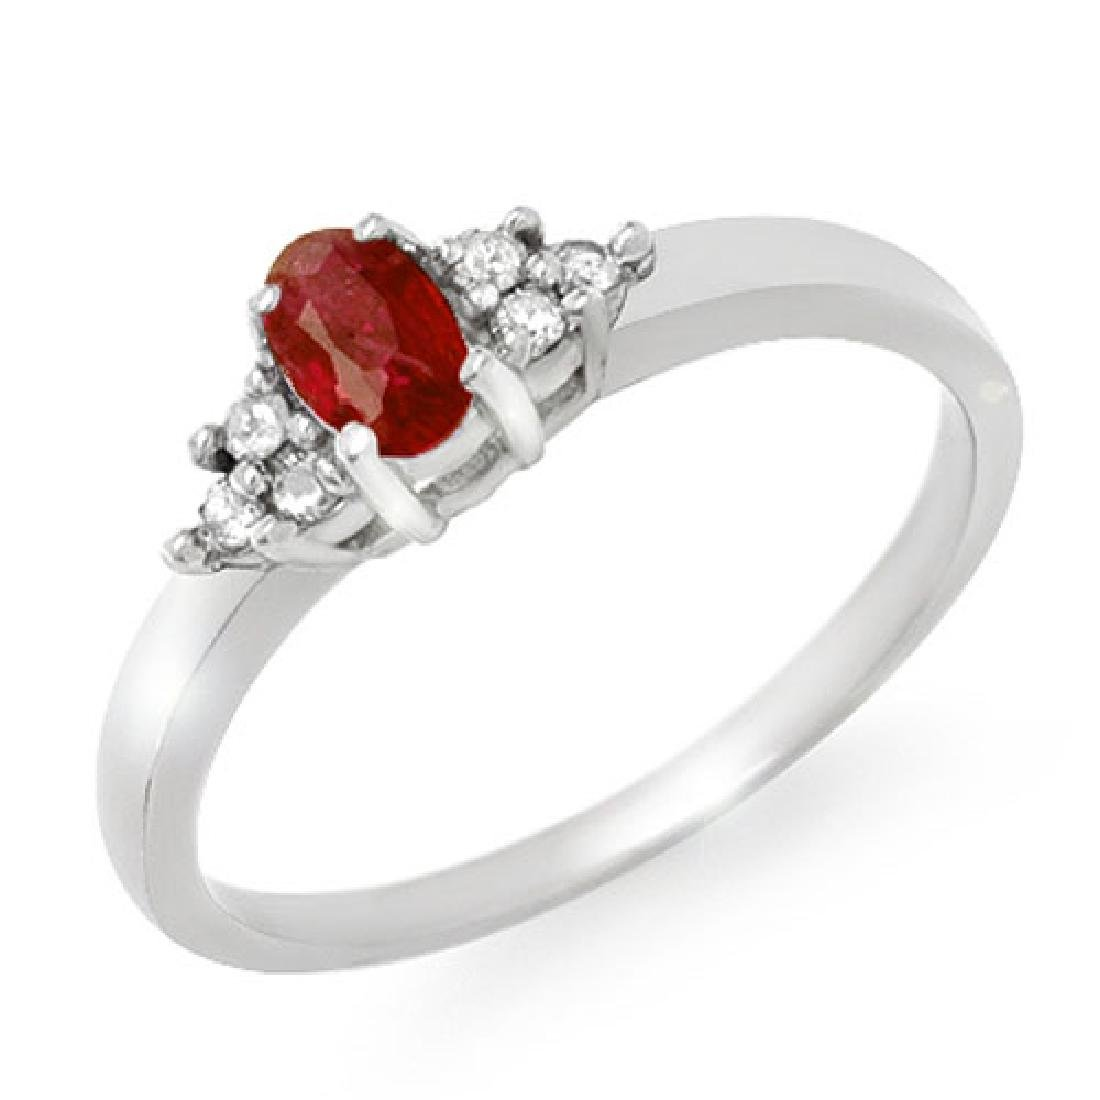 0.52 CTW Ruby & Diamond Ring 10K White Gold